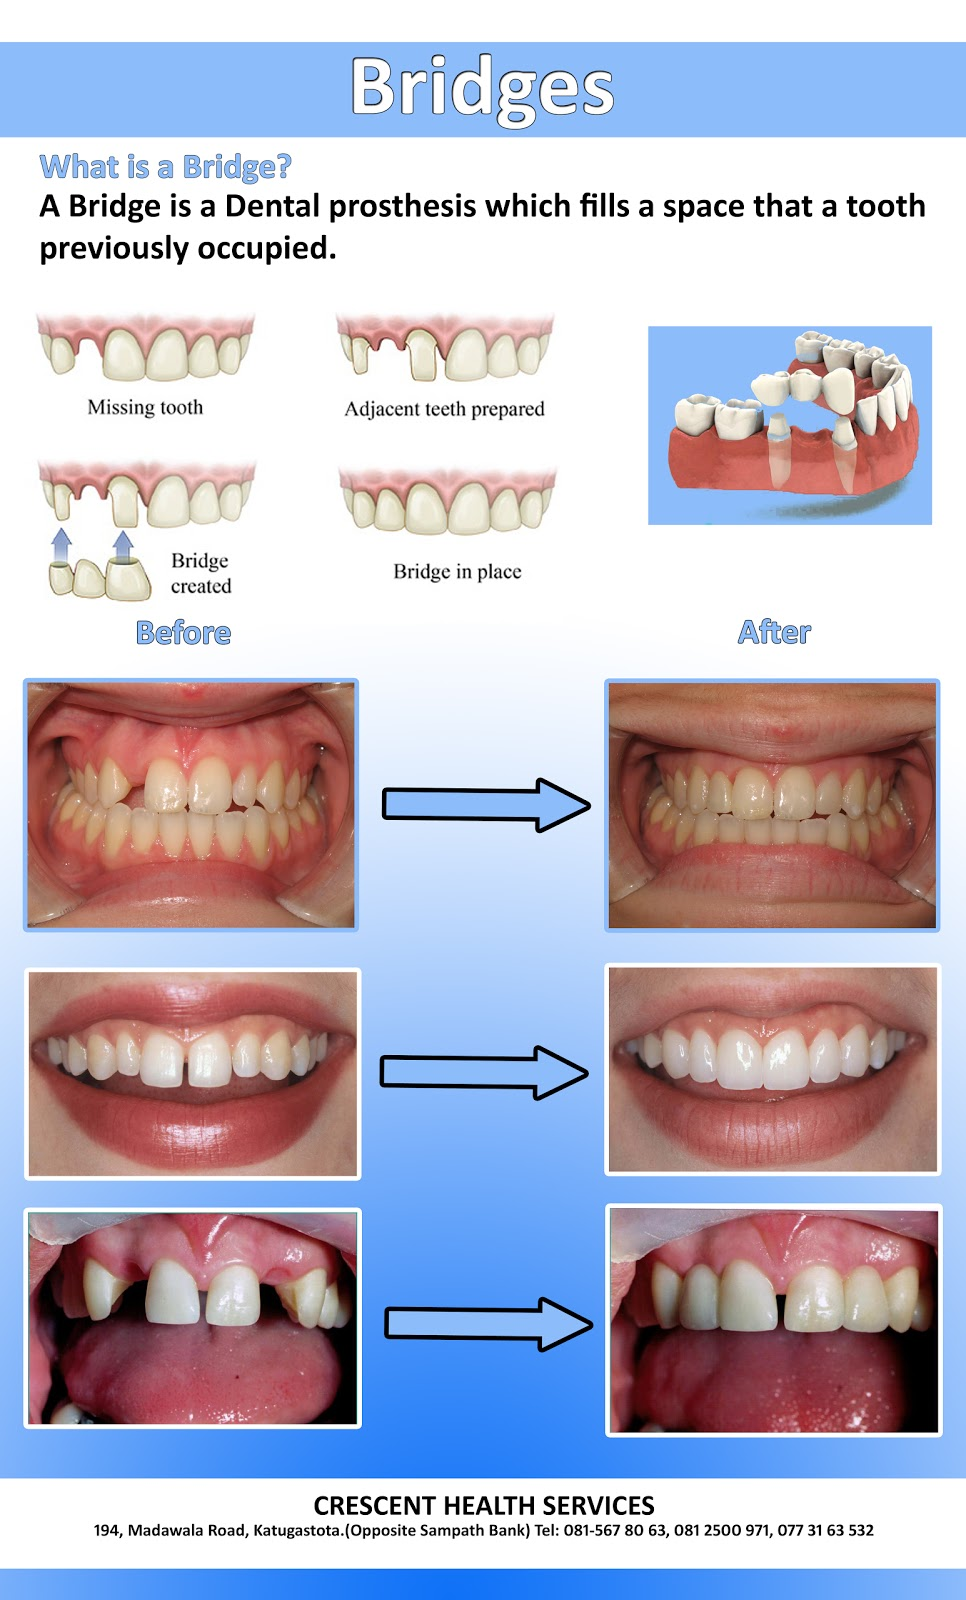 Bridge is a dental prosthesis which fills a space that a tooth